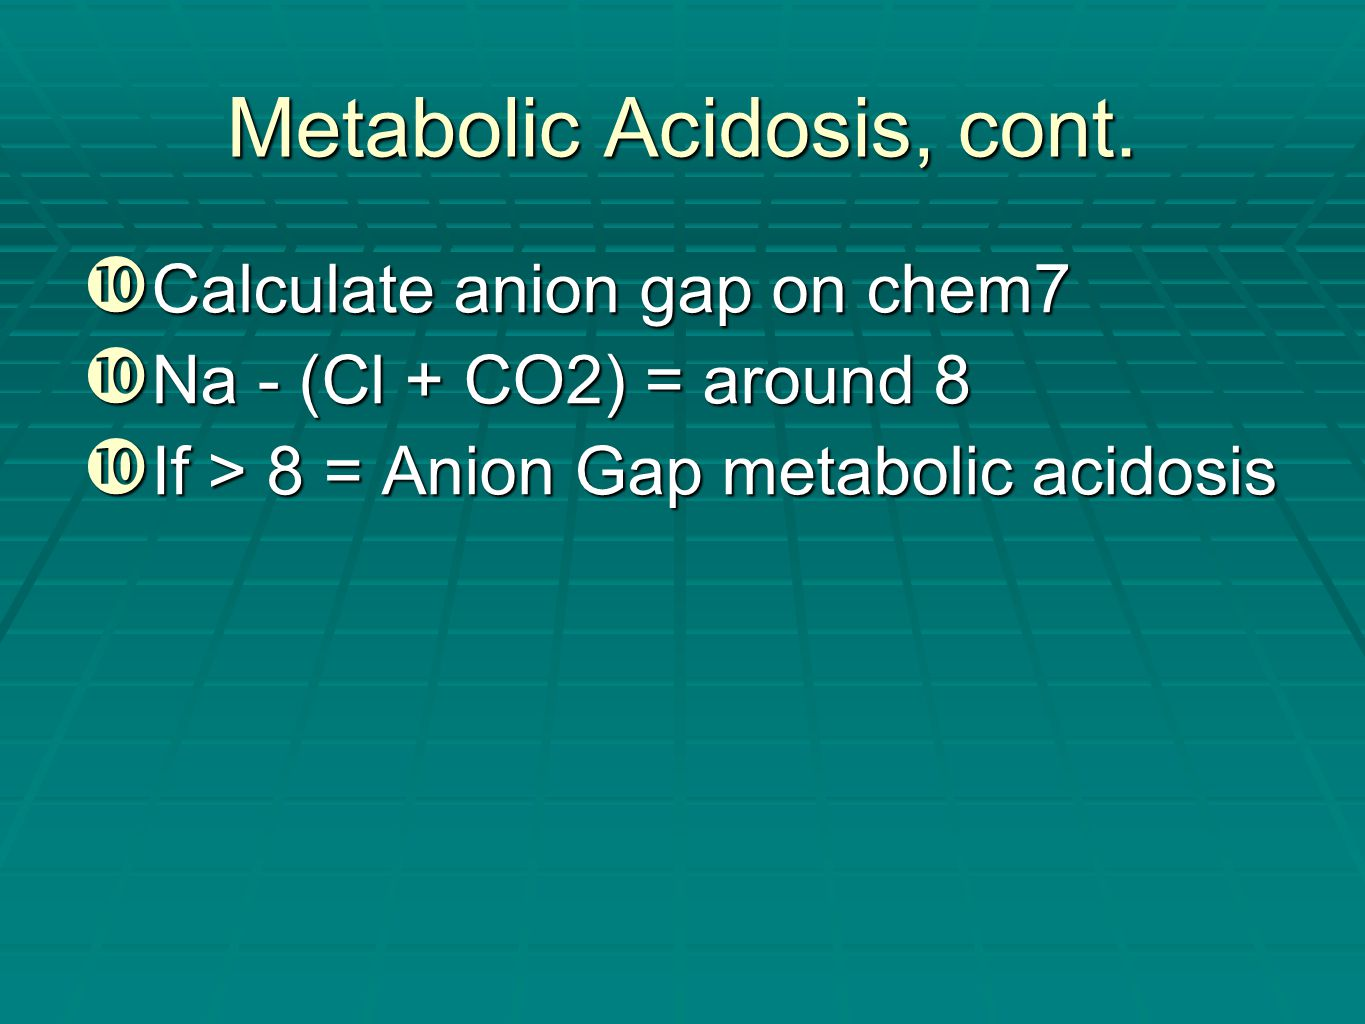 Metabolic Acidosis, cont.